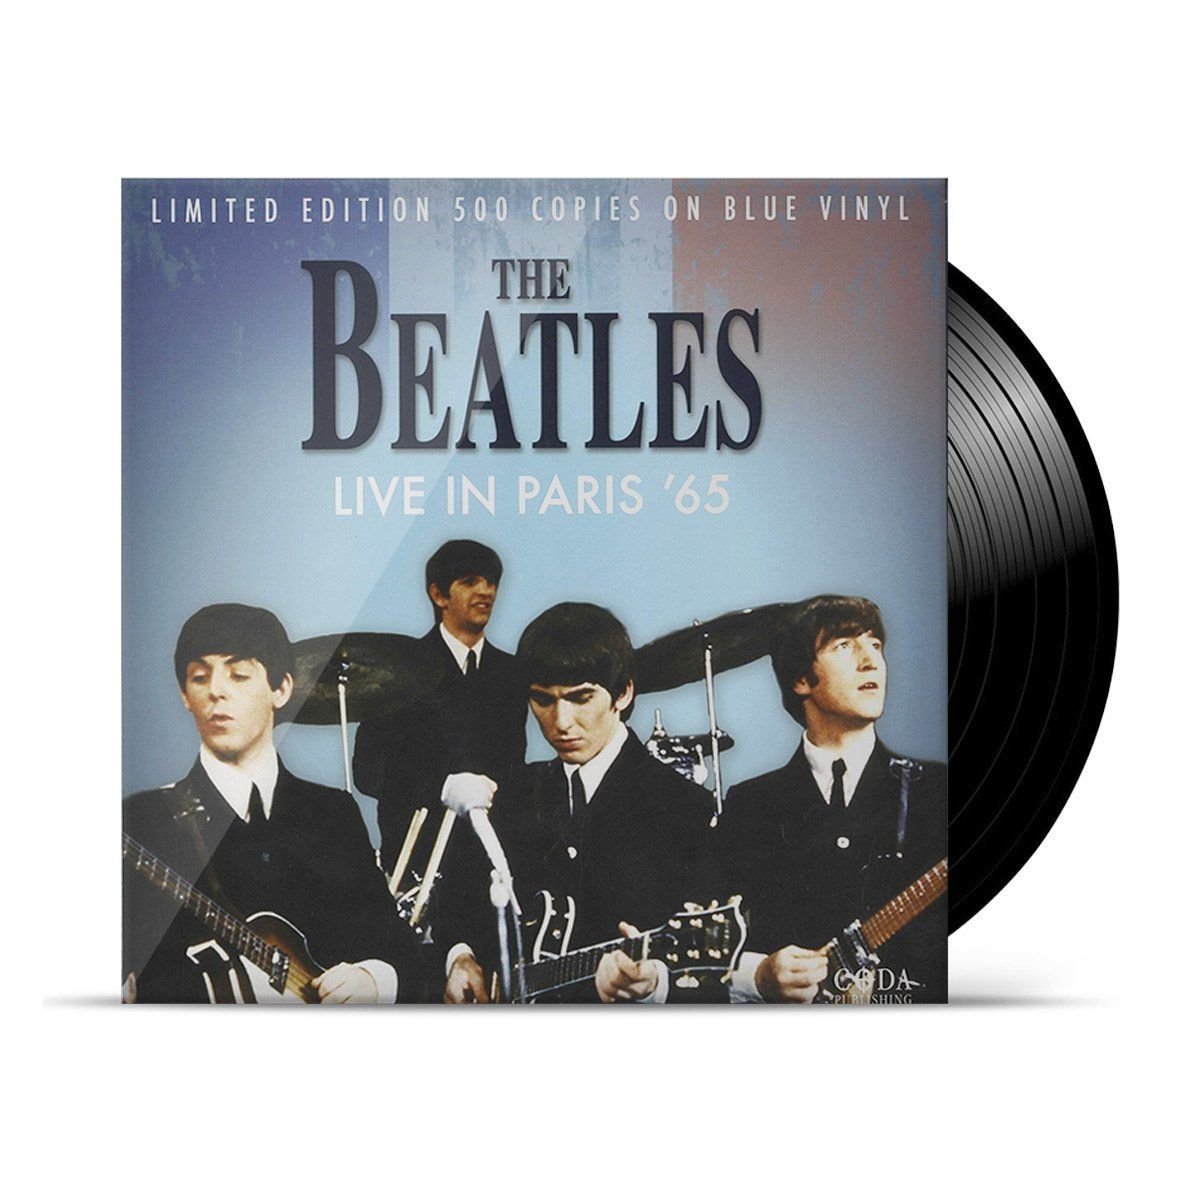 LP The Beatles Live in Paris 65  - bandUP Store Marketplace